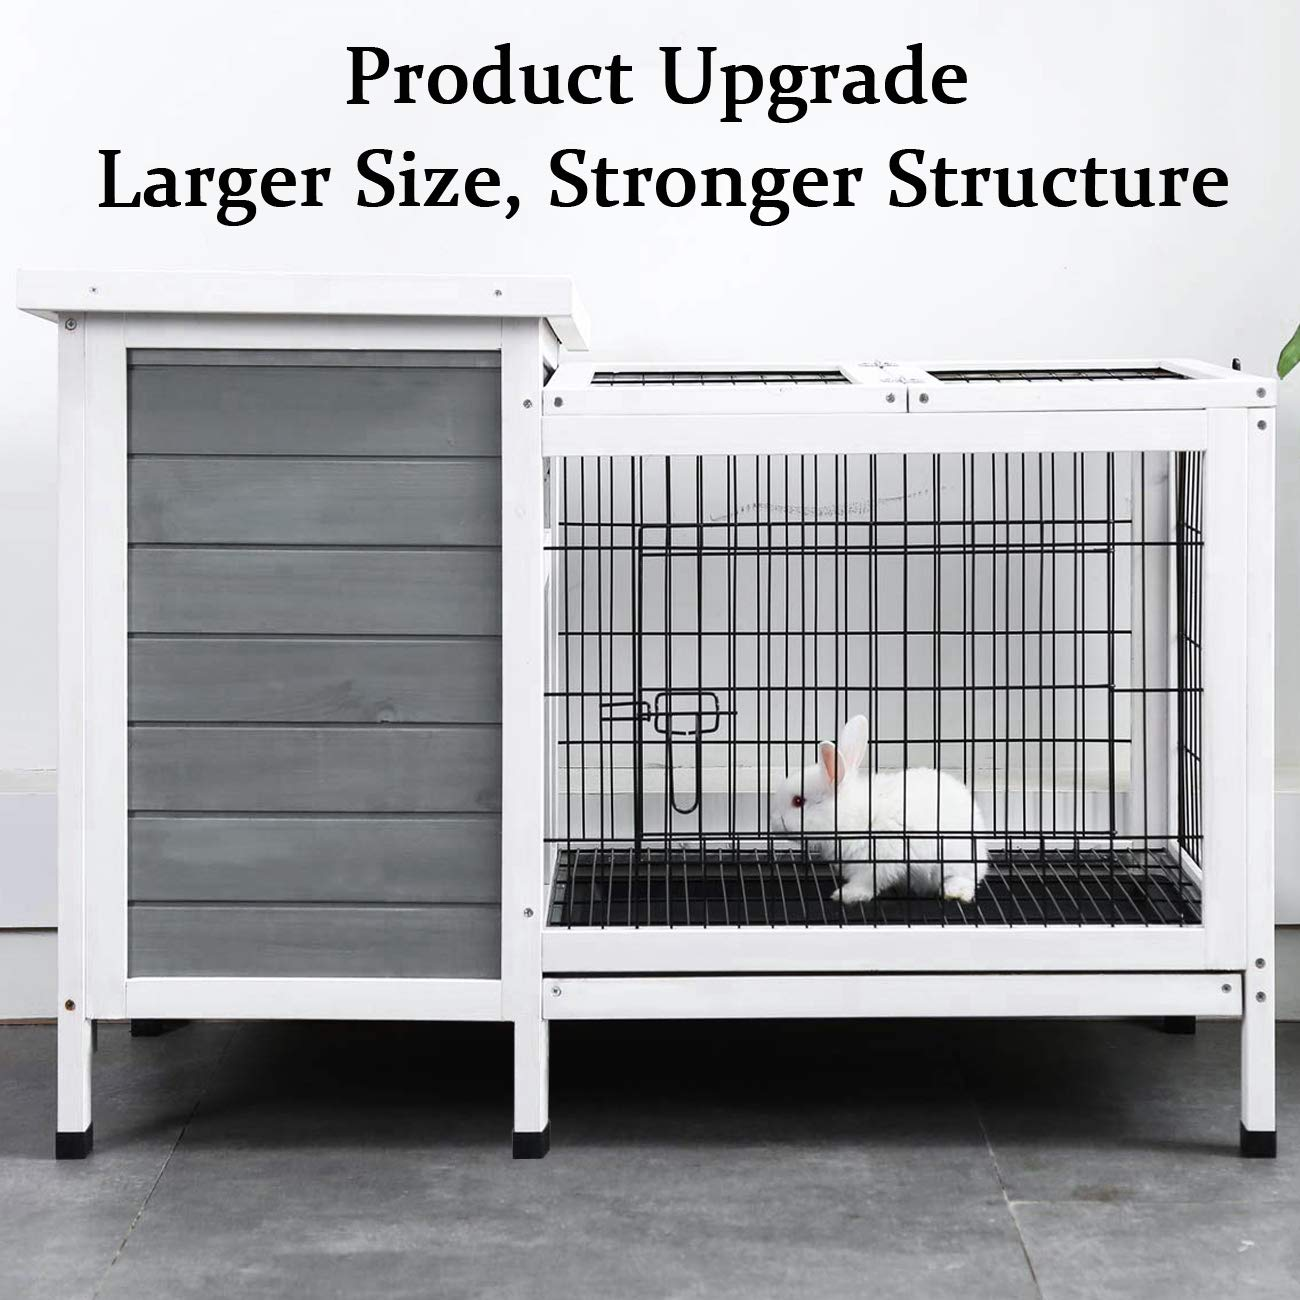 Sunnyglade Rabbit Hutch, Bunny Cage with Removable Tray, Bunny Hutch Wood 39.5'' L x 17.5'' W x 25.4'' H for Indoor Outdoor Use by Sunnyglade